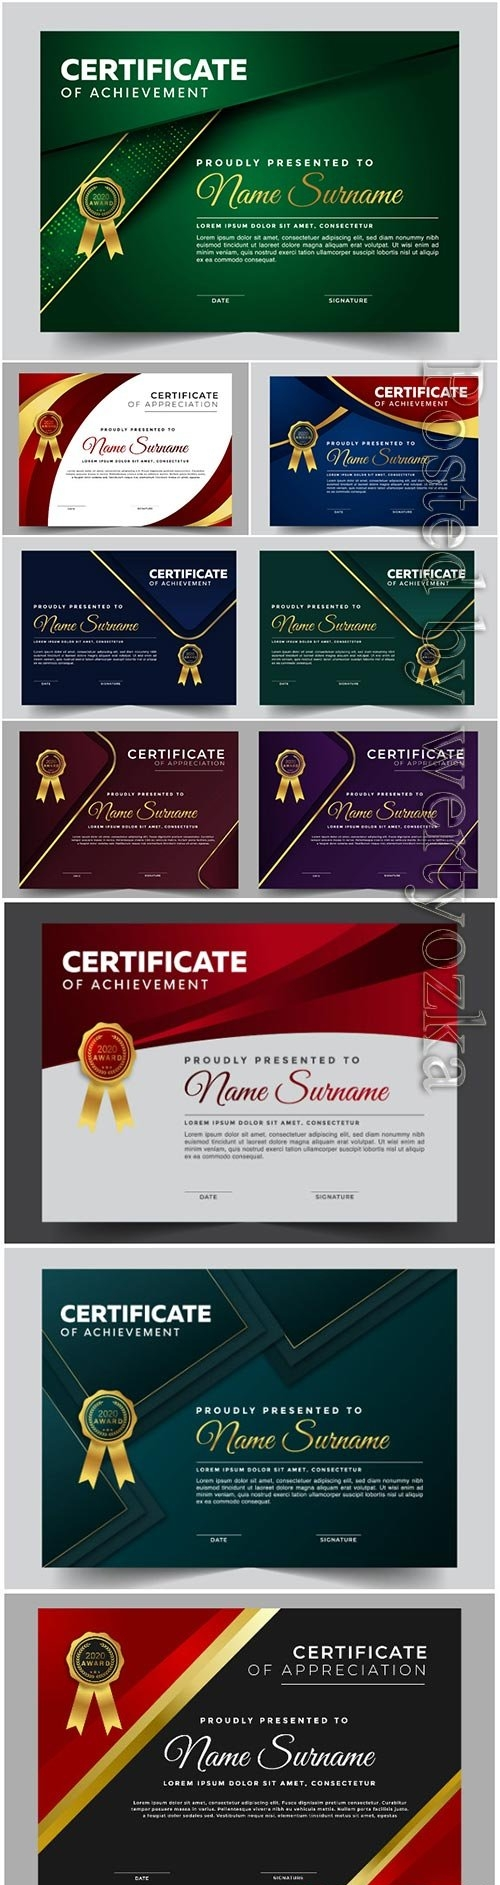 Professional certificate vector design template